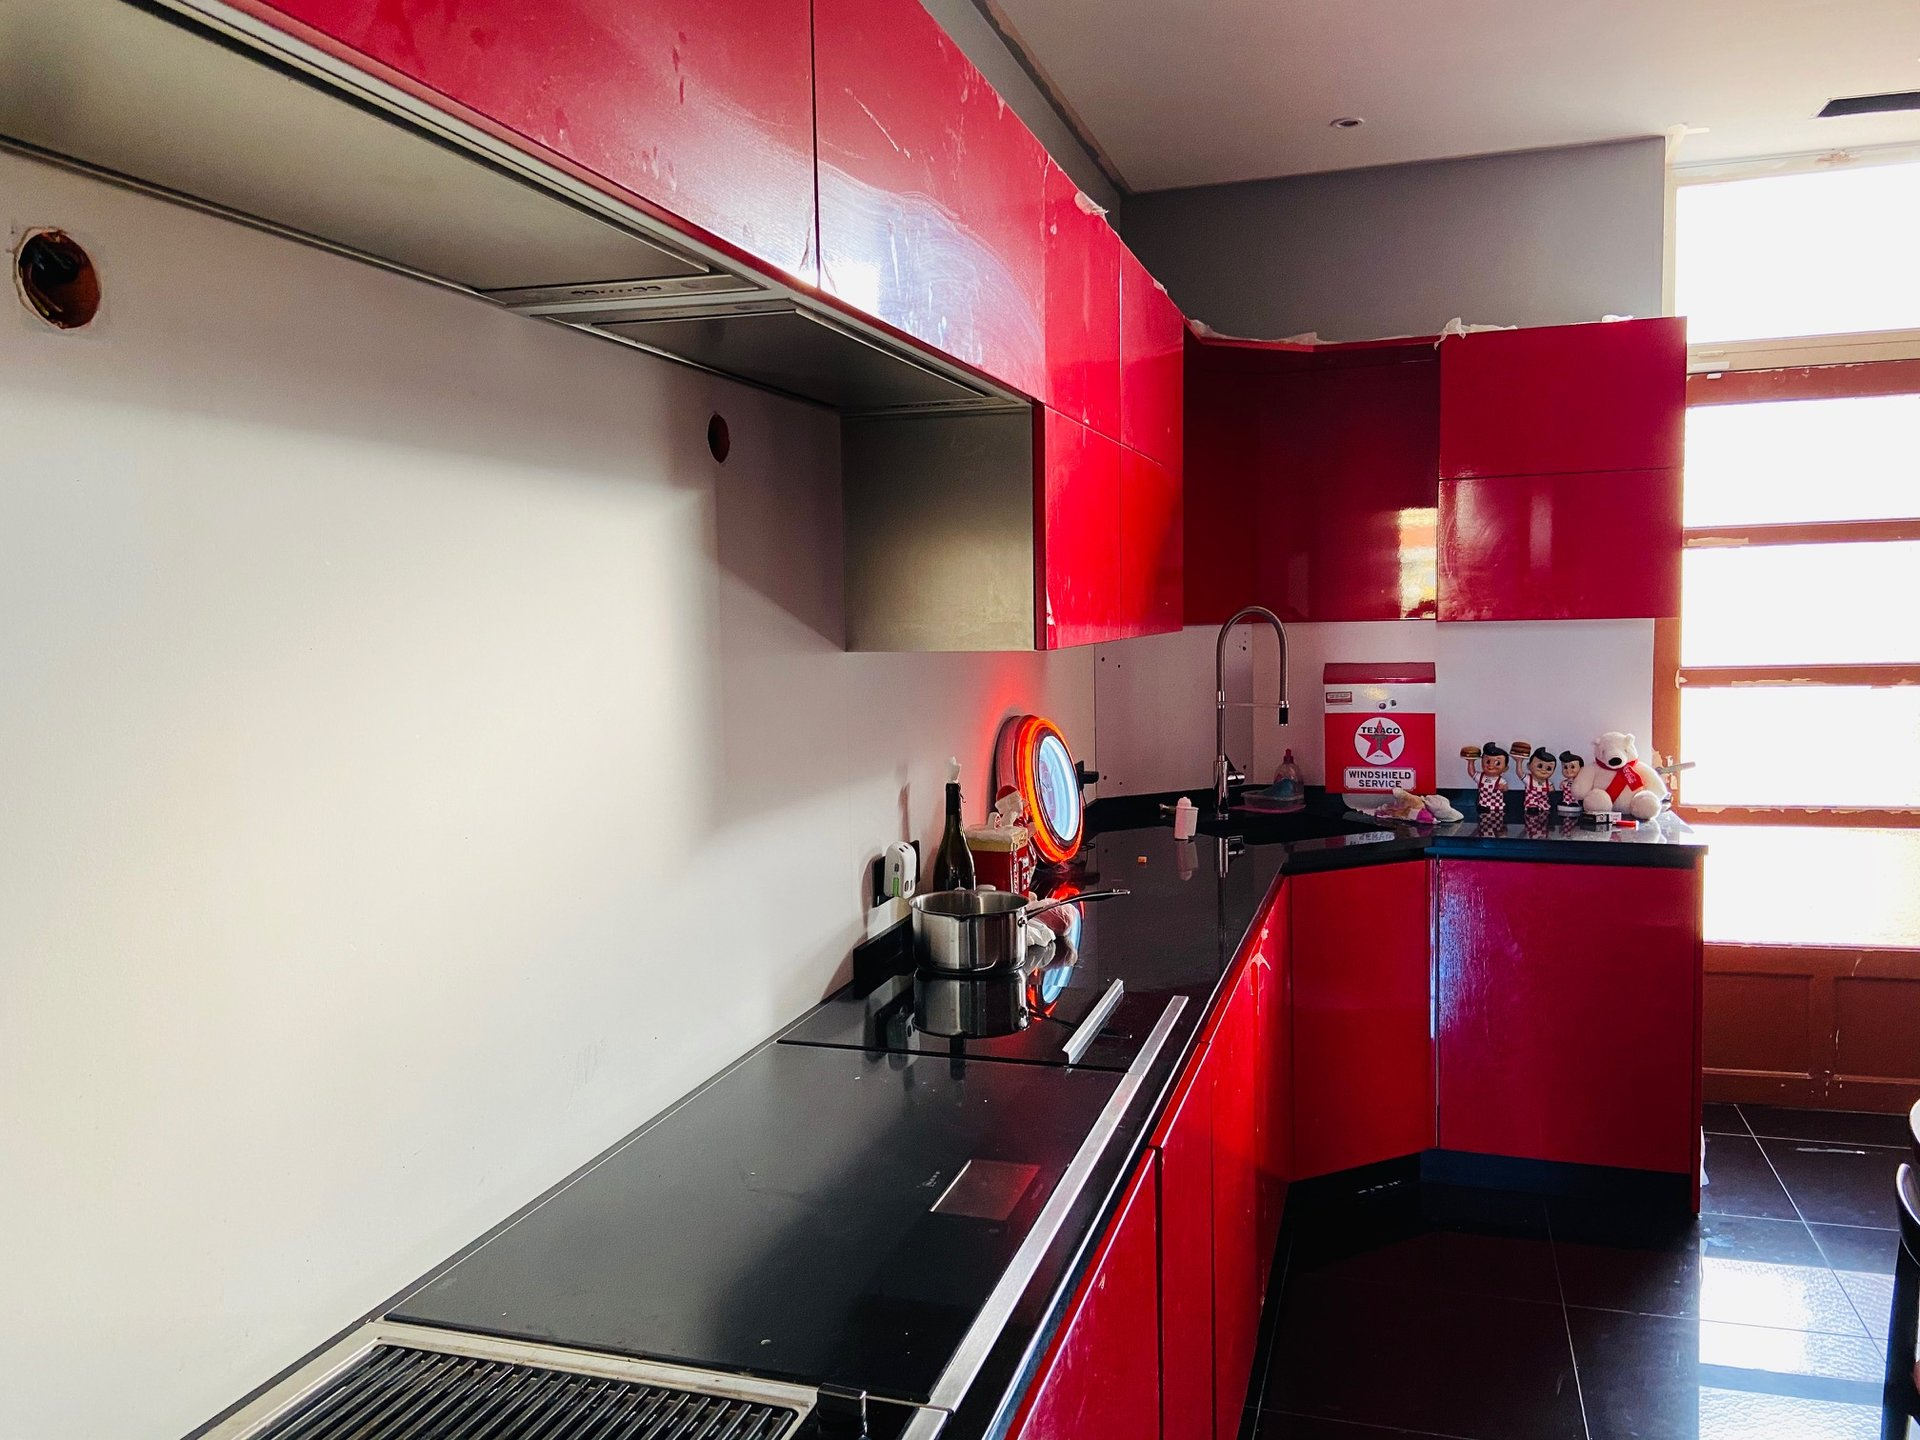 PLACE GARIBALDI: EXCEPTIONNEL APPARTEMENT DE 250m²